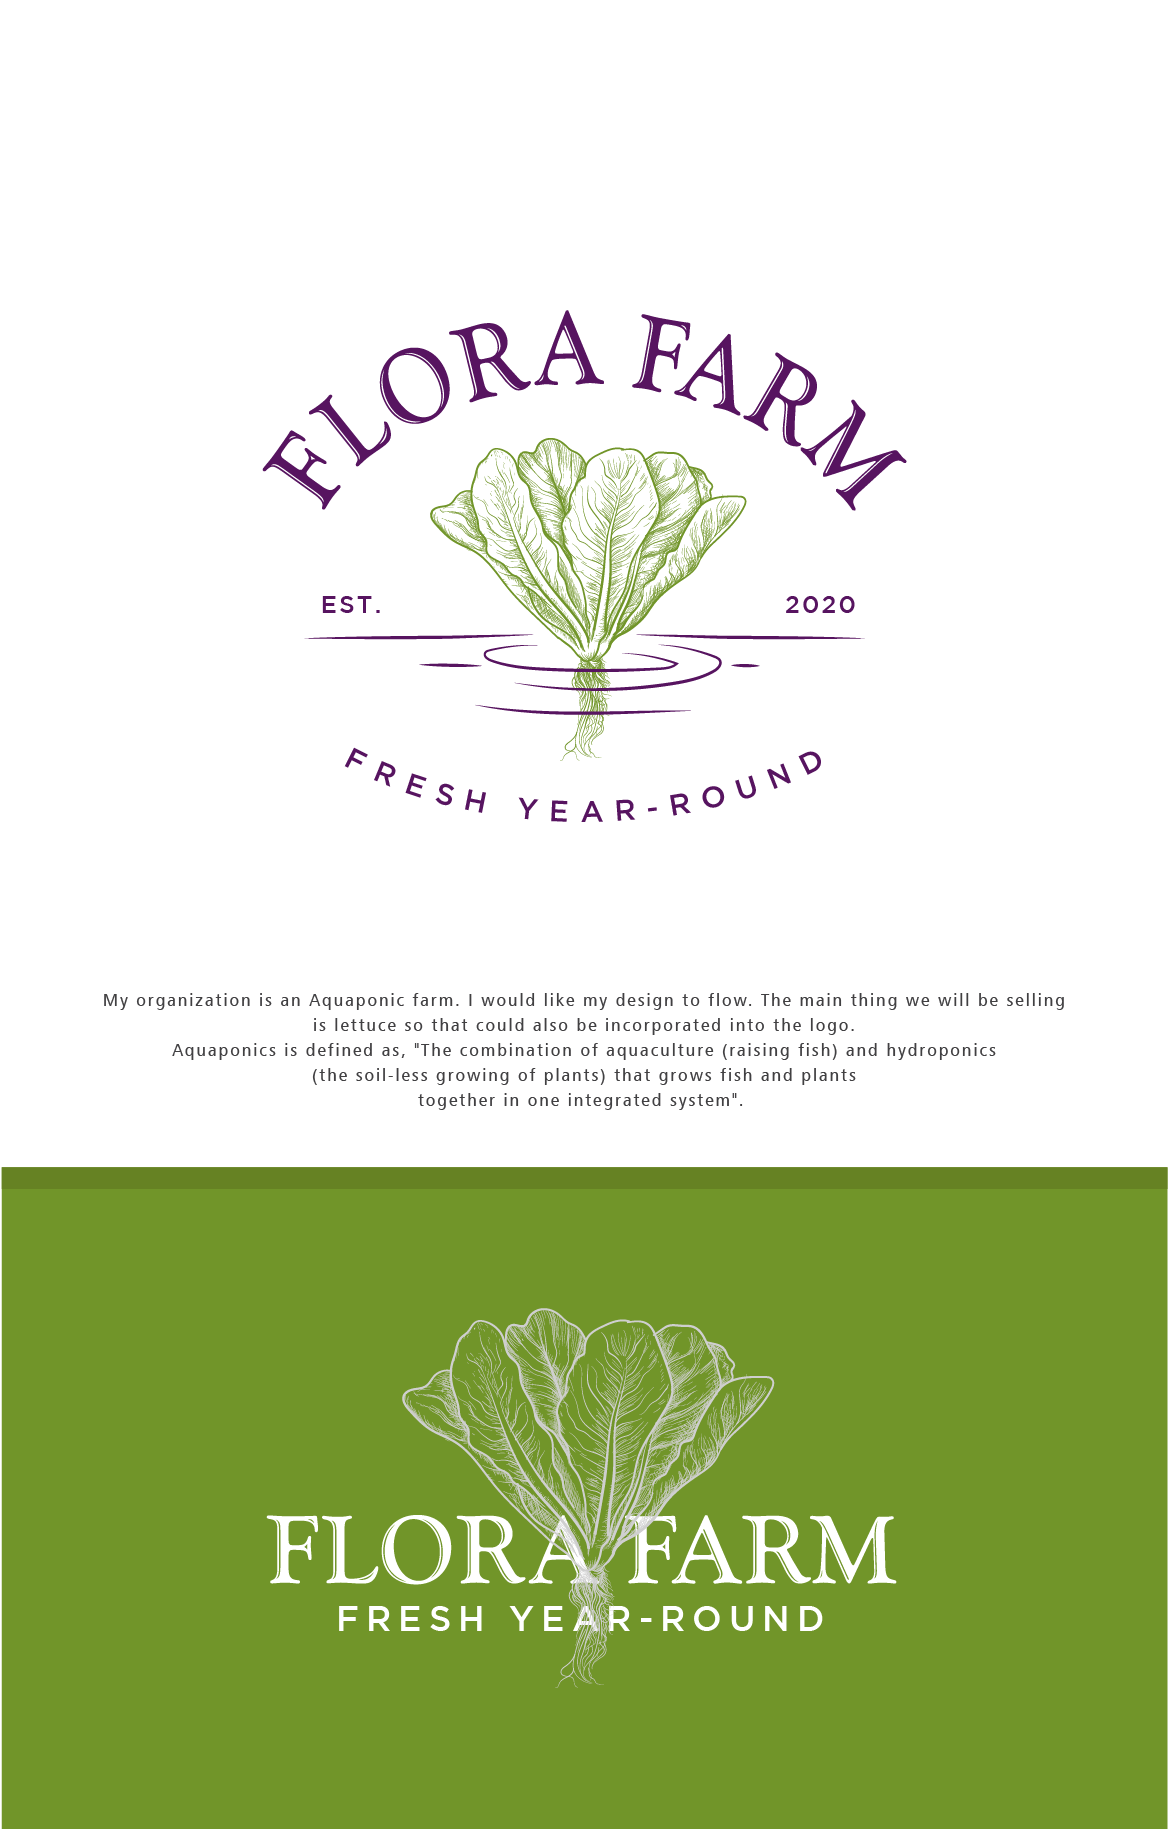 Design a logo that flows for a sustainable produce farm.